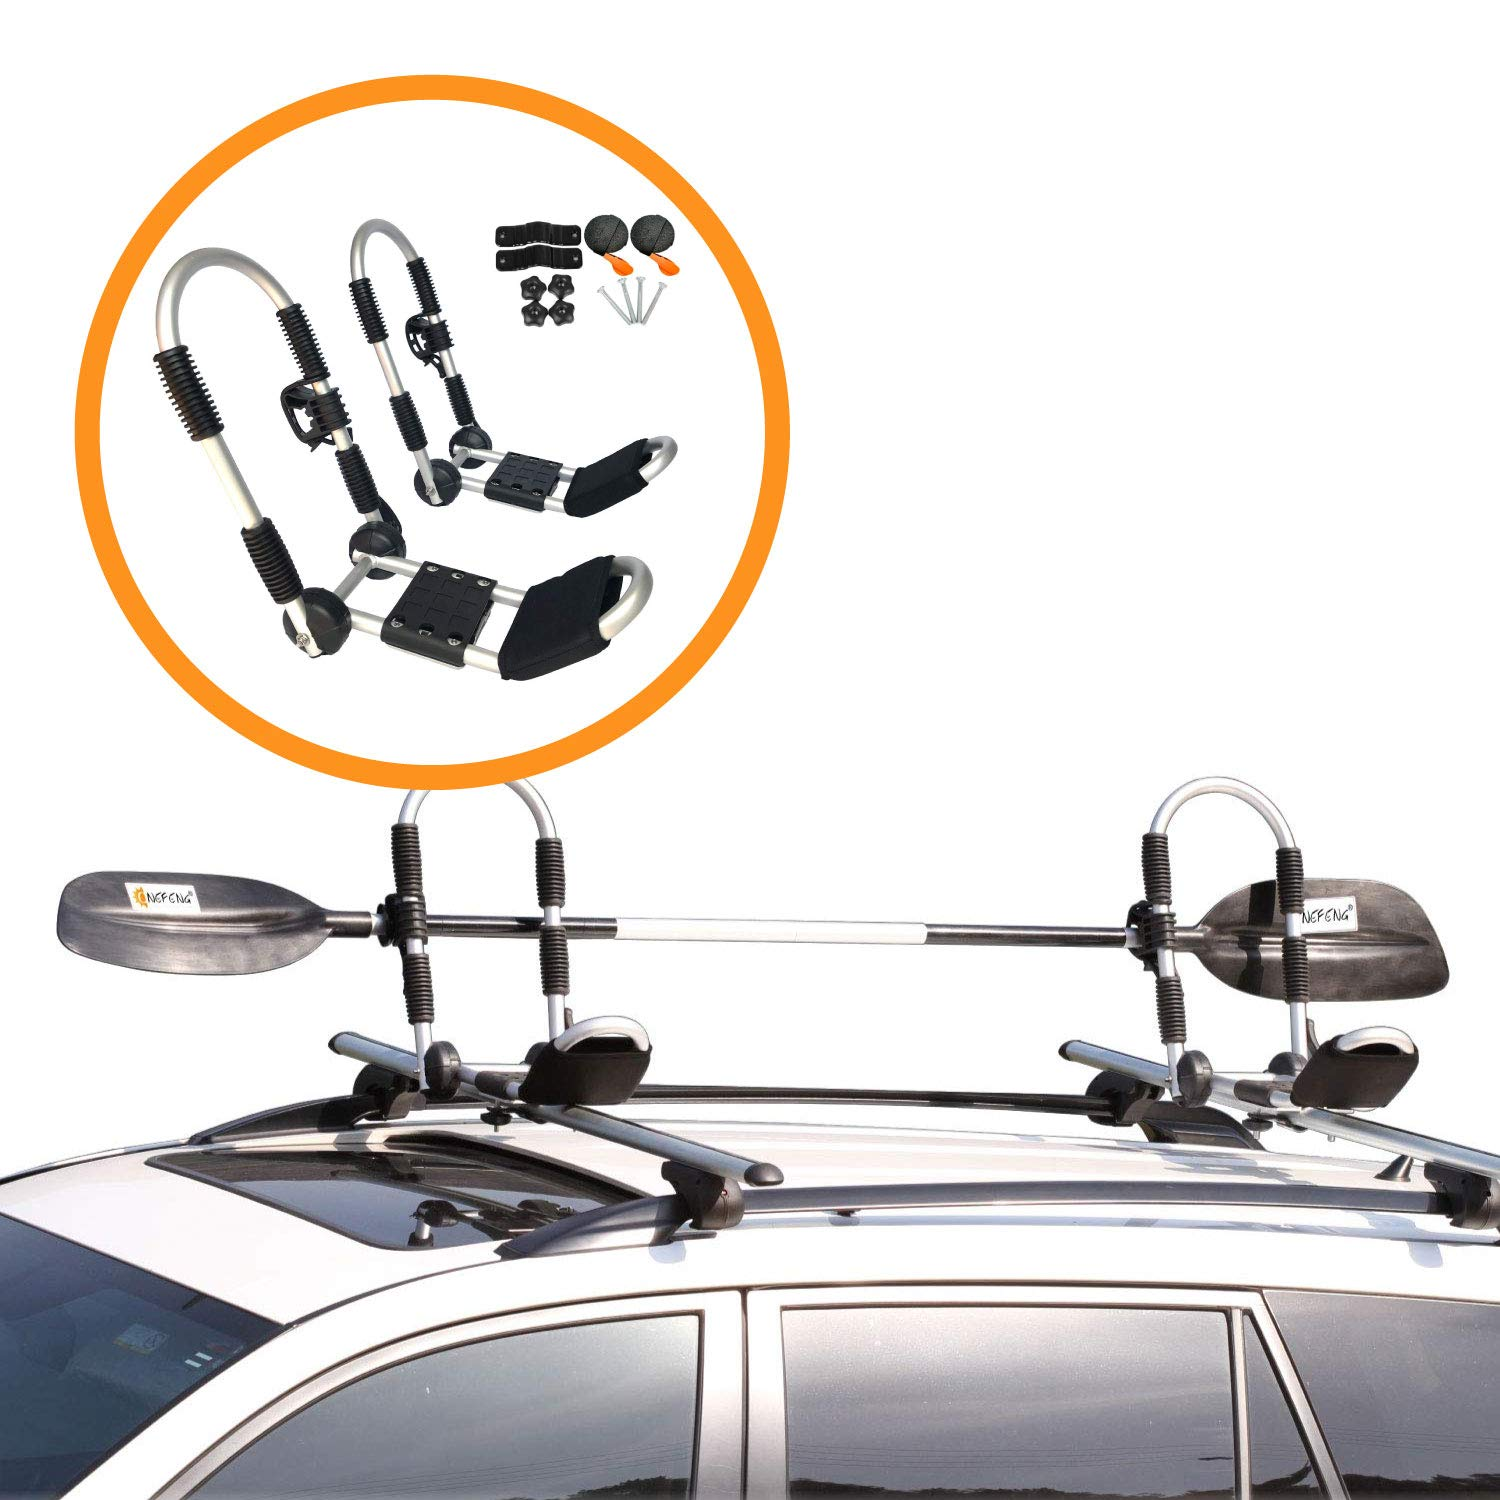 Car Crossbar Kayak Carrier Car Roof Rack J-Shape Foldable Carrier for Canoe SUP and Kayaks Mounted on Your SUV Onefeng Sports Foldable Kayak Rack